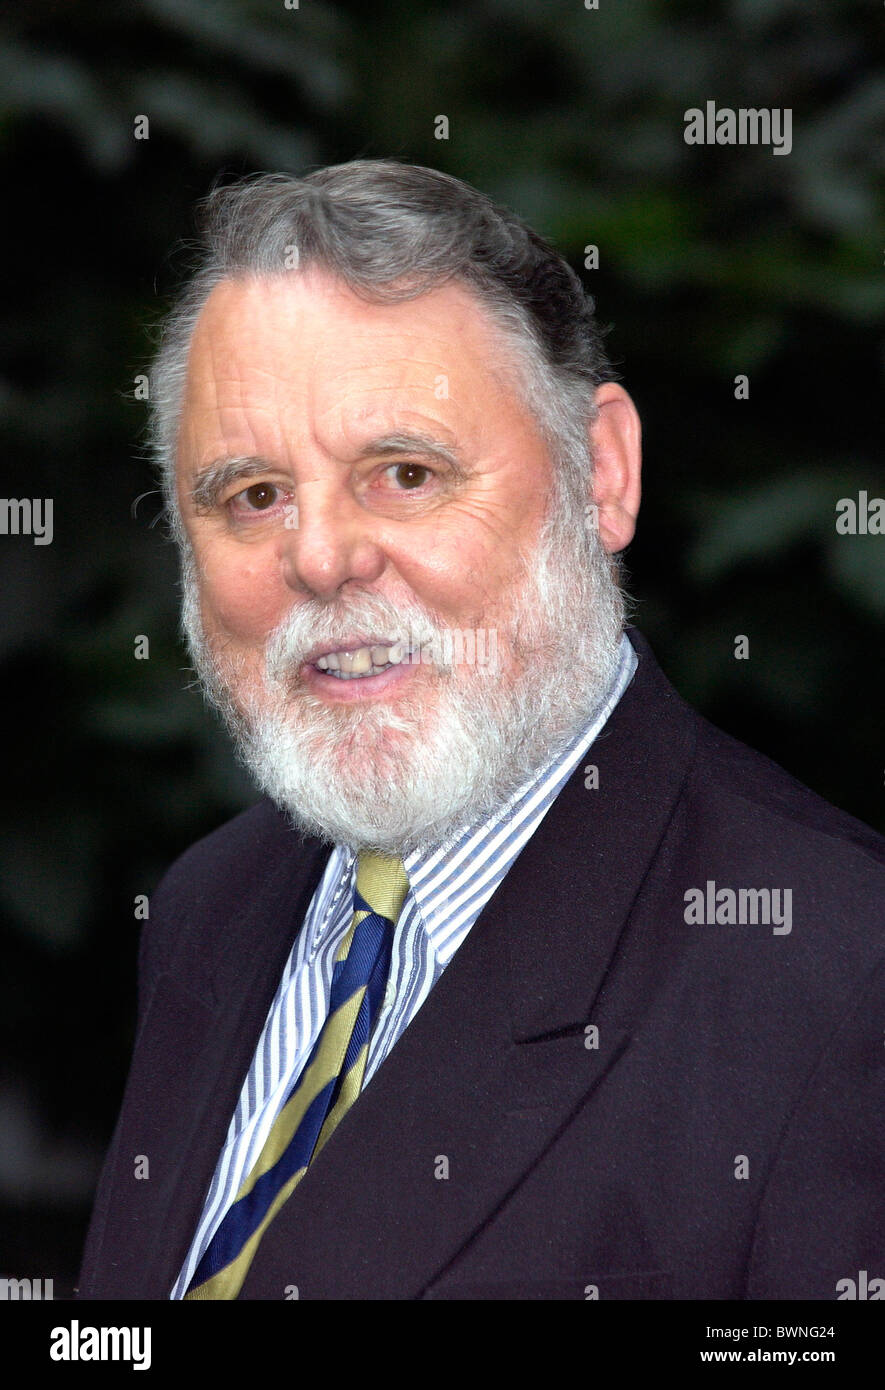 Celebrities party in fashionable Chelsea - Sir Terry Waite, former Beirut hostage. - Stock Image